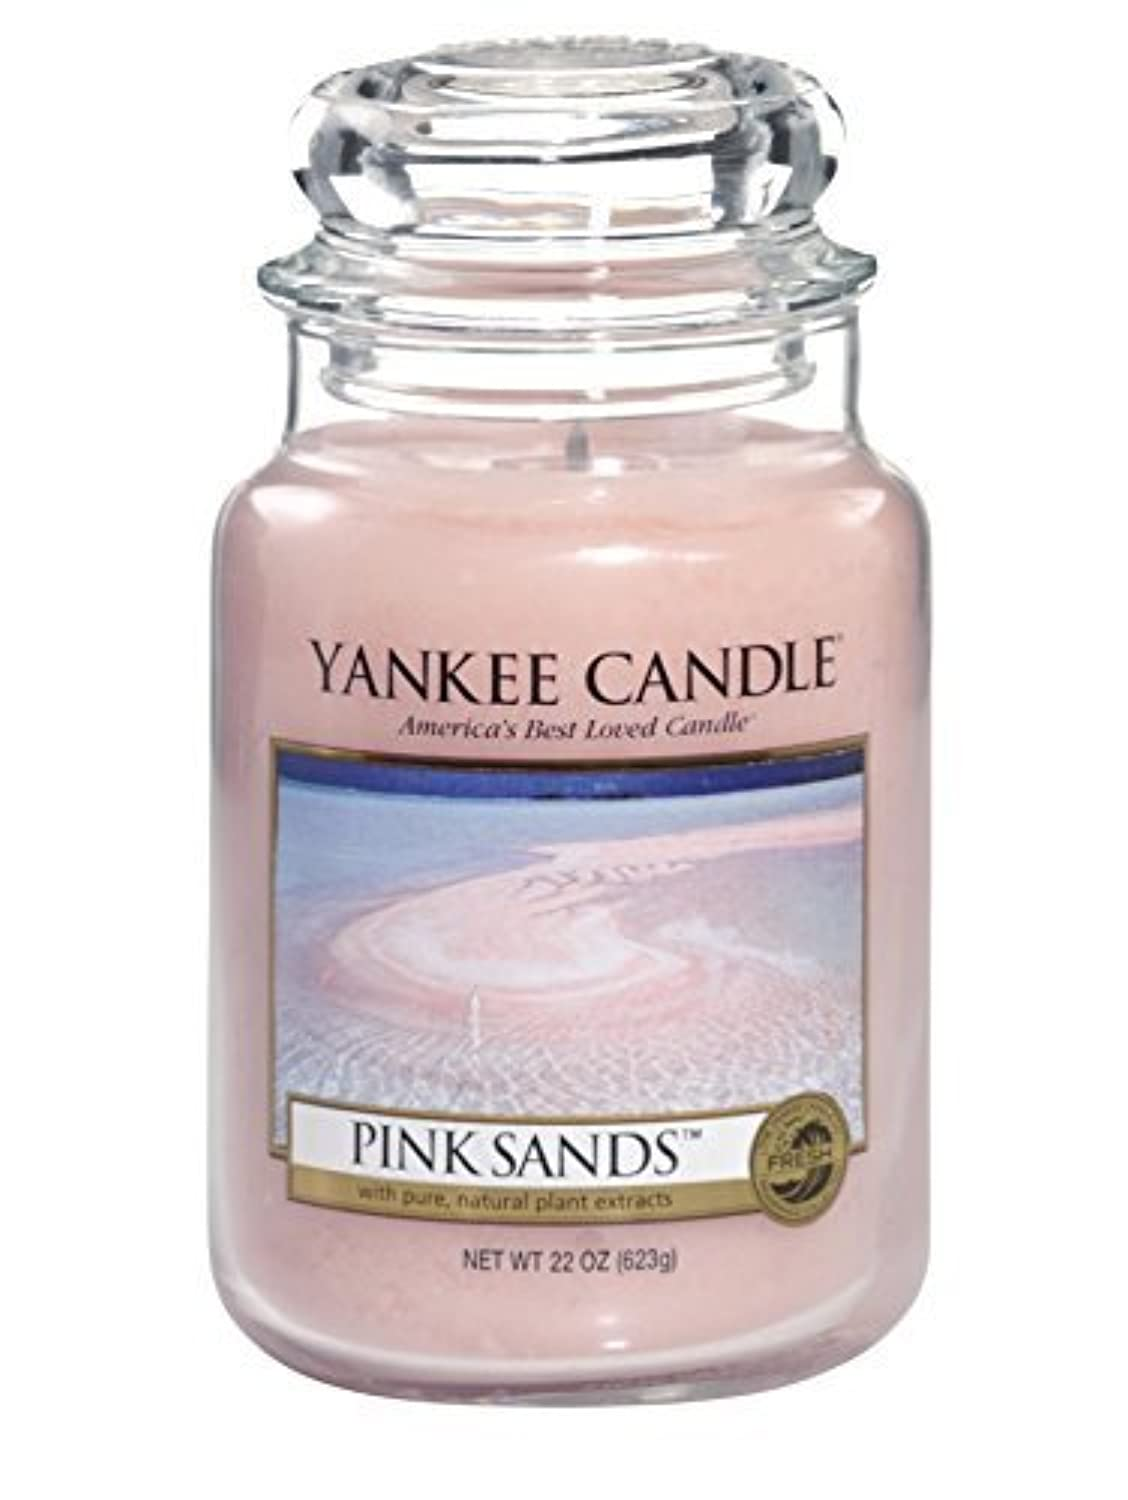 Yankee Candle Pink Sands Large Jar 22oz Candle by Amazon source [並行輸入品]